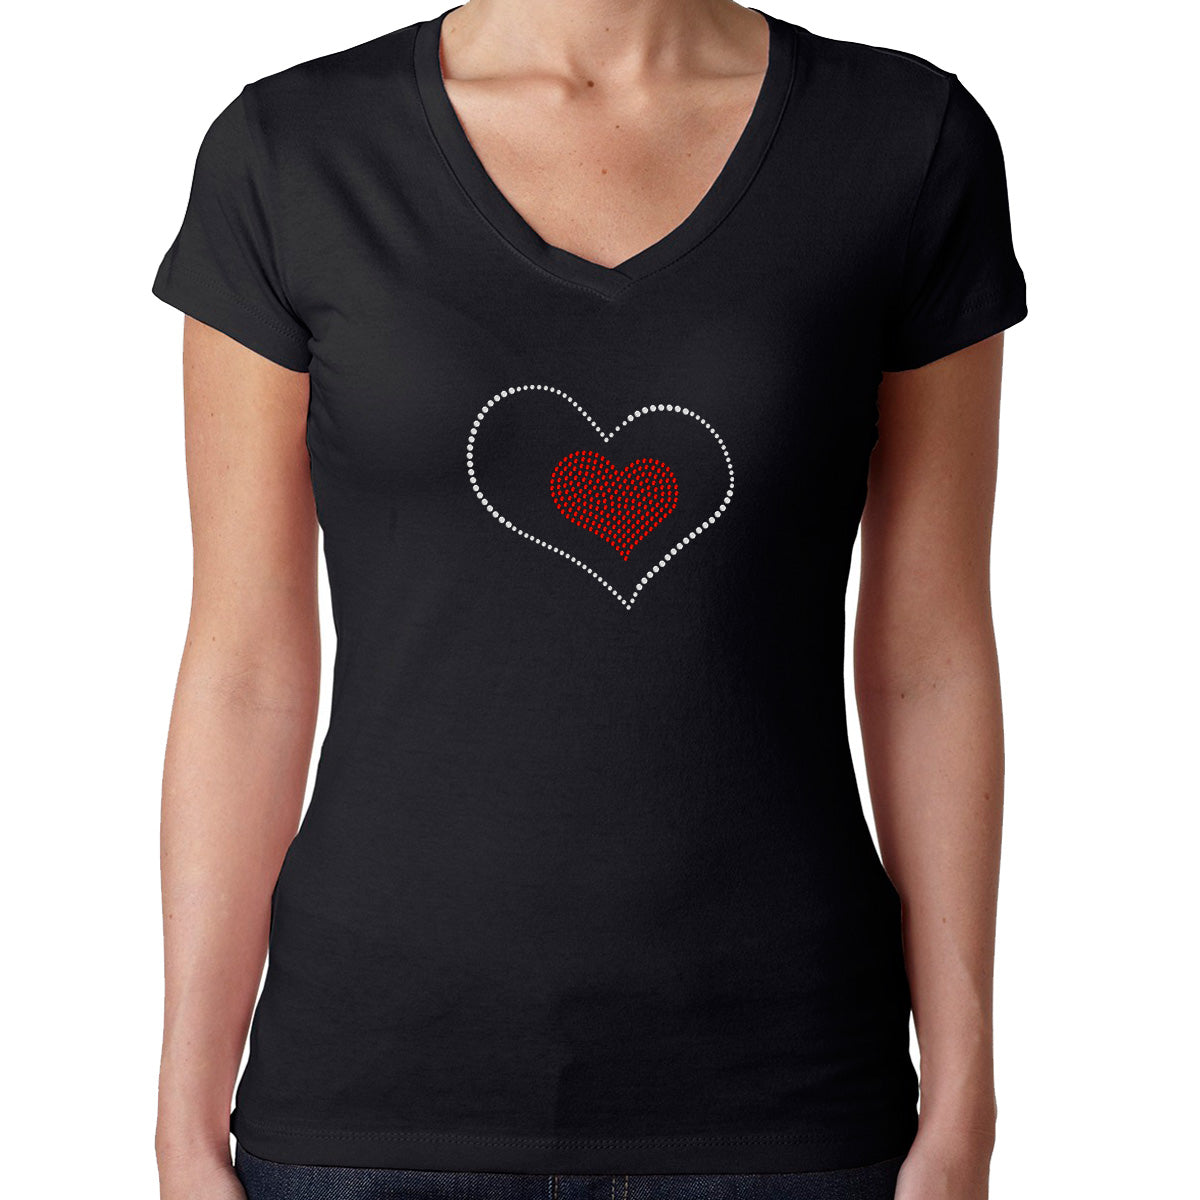 Womens T-Shirt Rhinestone Bling Black Fitted Tee Heart inside Heart White Red